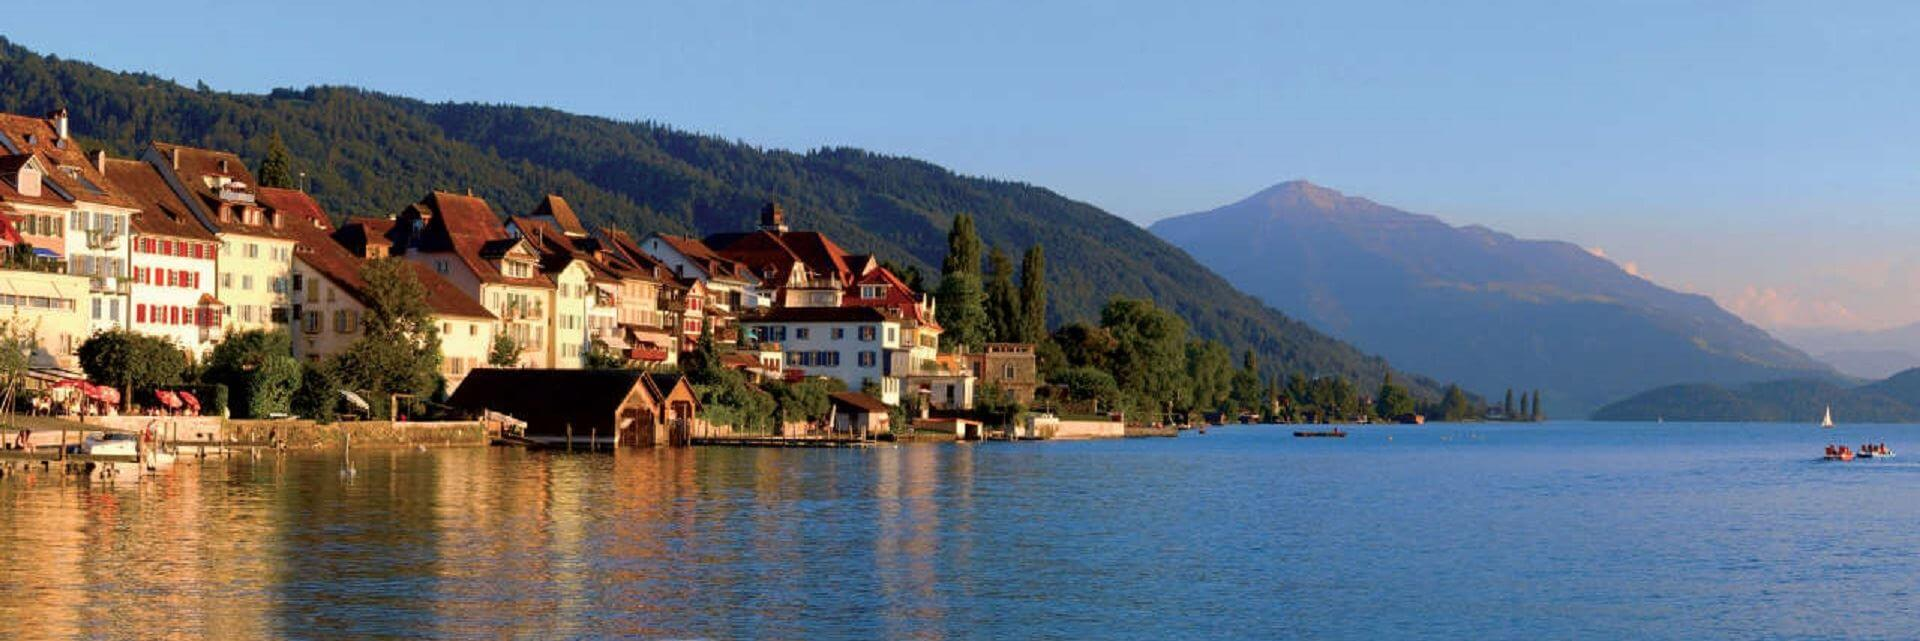 Zug - the charming Swiss town welcomes you | Switzerland Tour